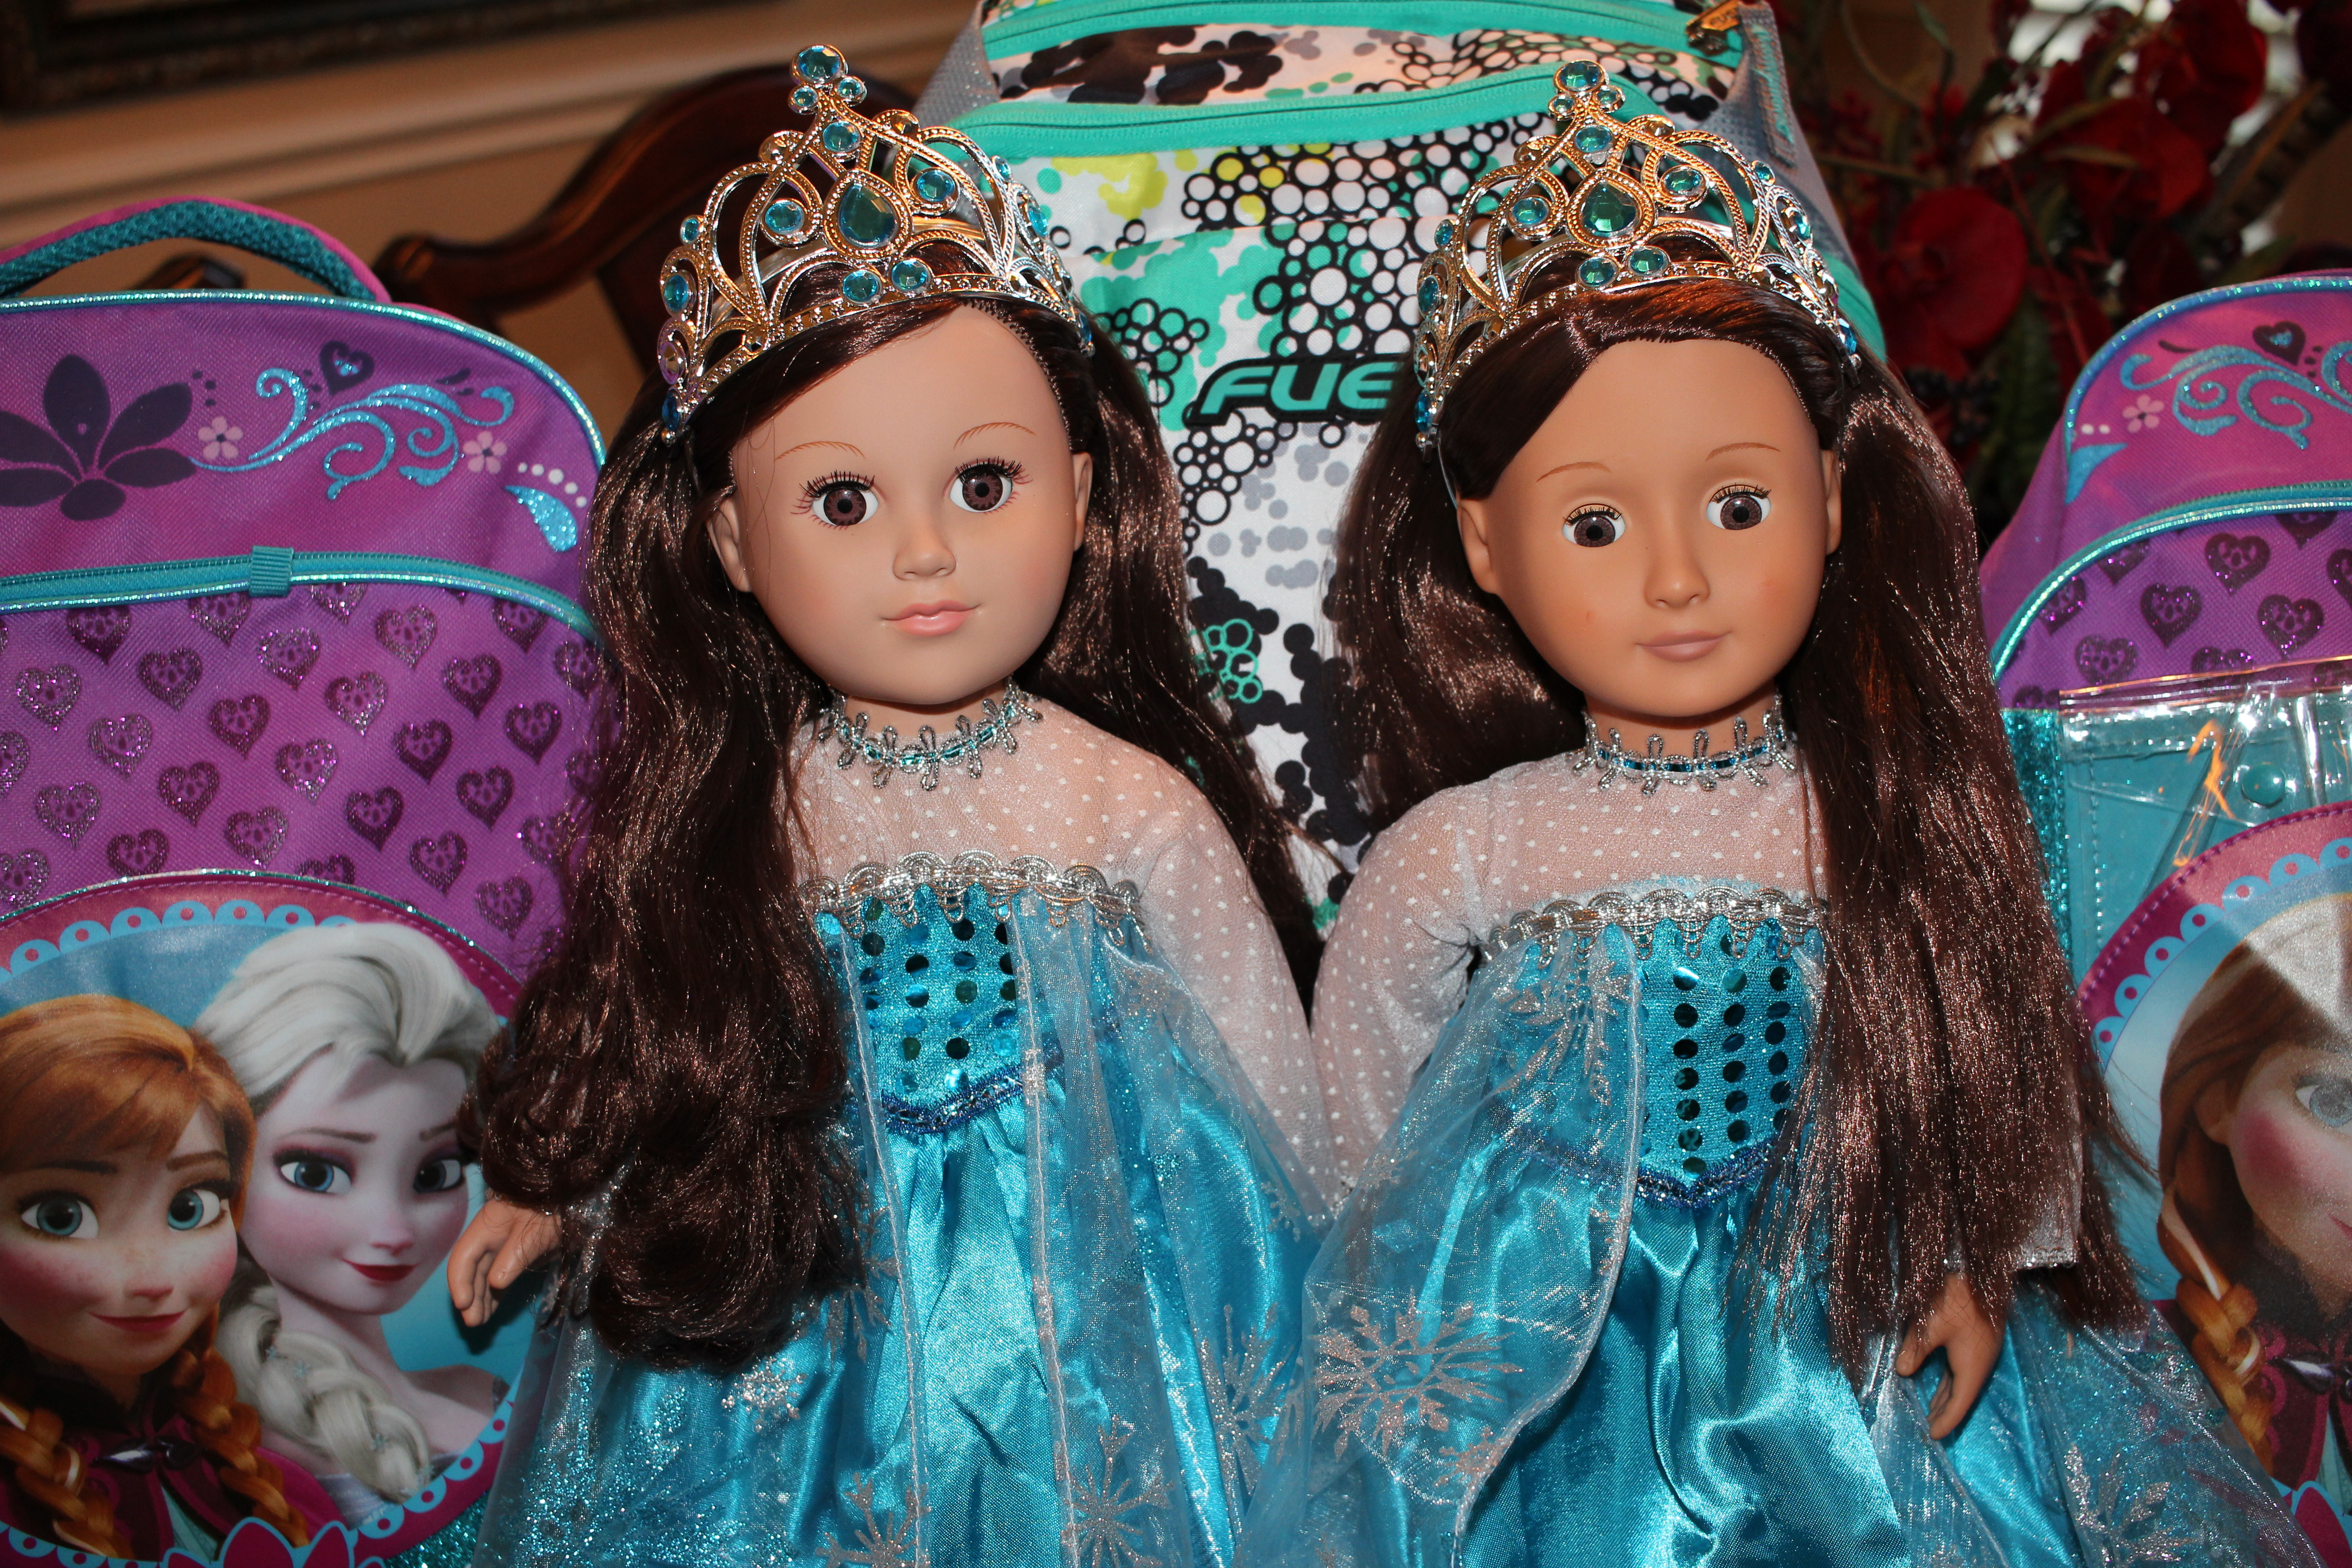 Restoring American Girl Dolls and Other 18″ Dolls